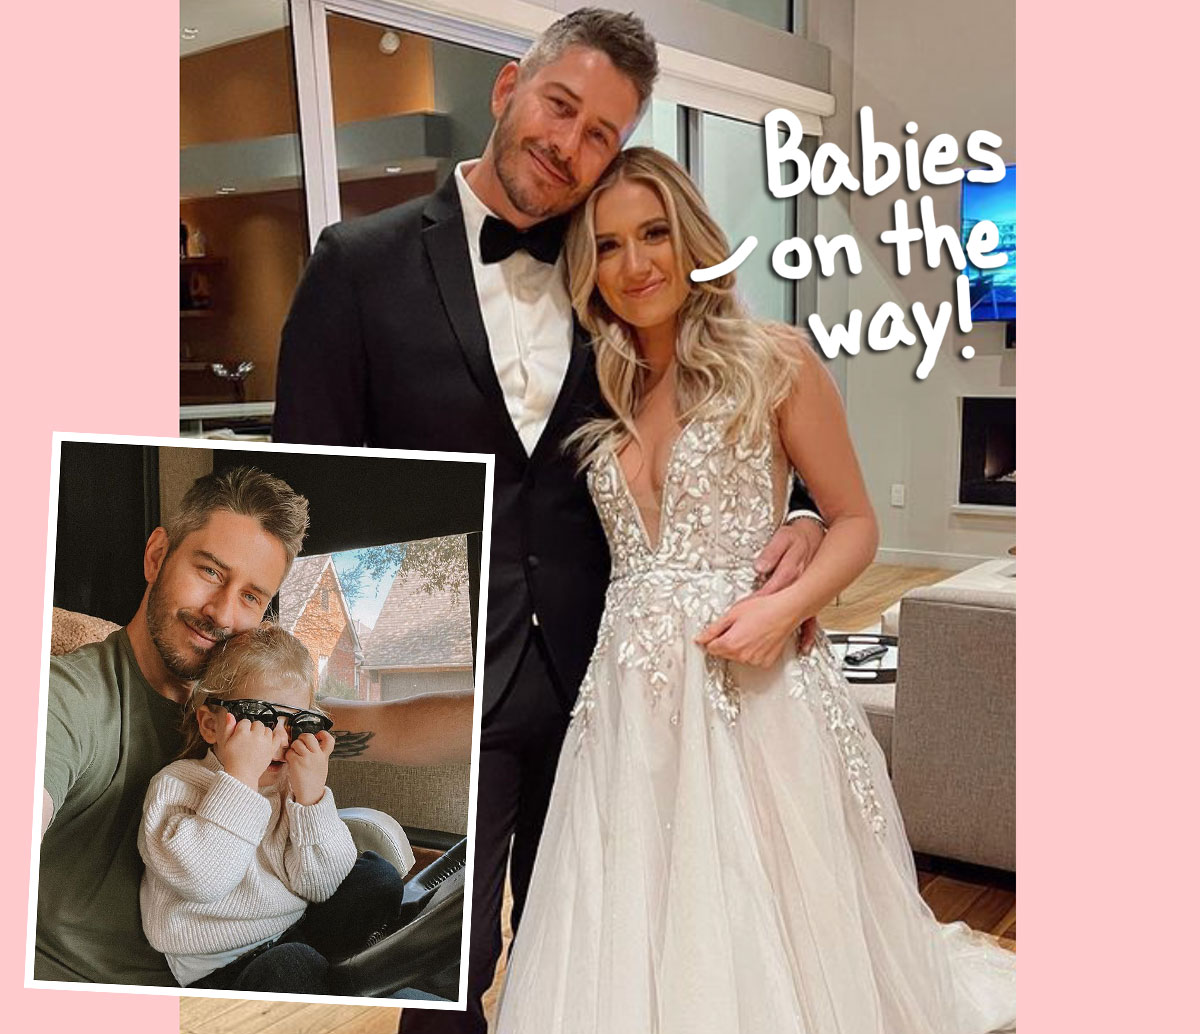 How Magical… The Bachelor's Lauren Burnham Told Arie Luyendyk Jr. She Was Pregnant In The Middle Of A Fight